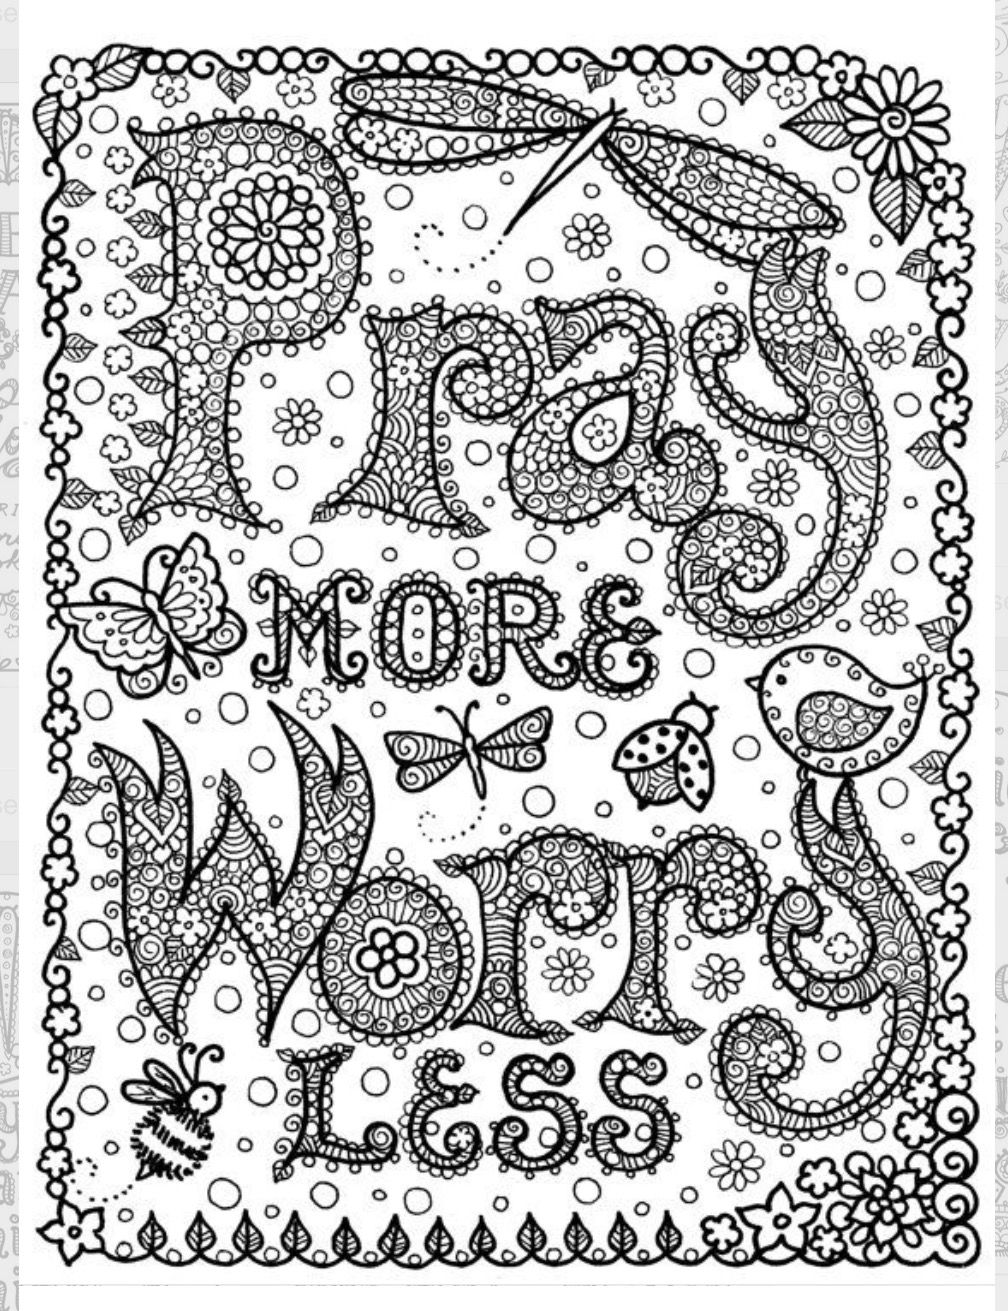 Free printable detailed coloring pages - Idear From Christina Print This On Colored Or Patten Cardbord Paper And Fame It Will Look On A Wall Instant Download Coloring Page